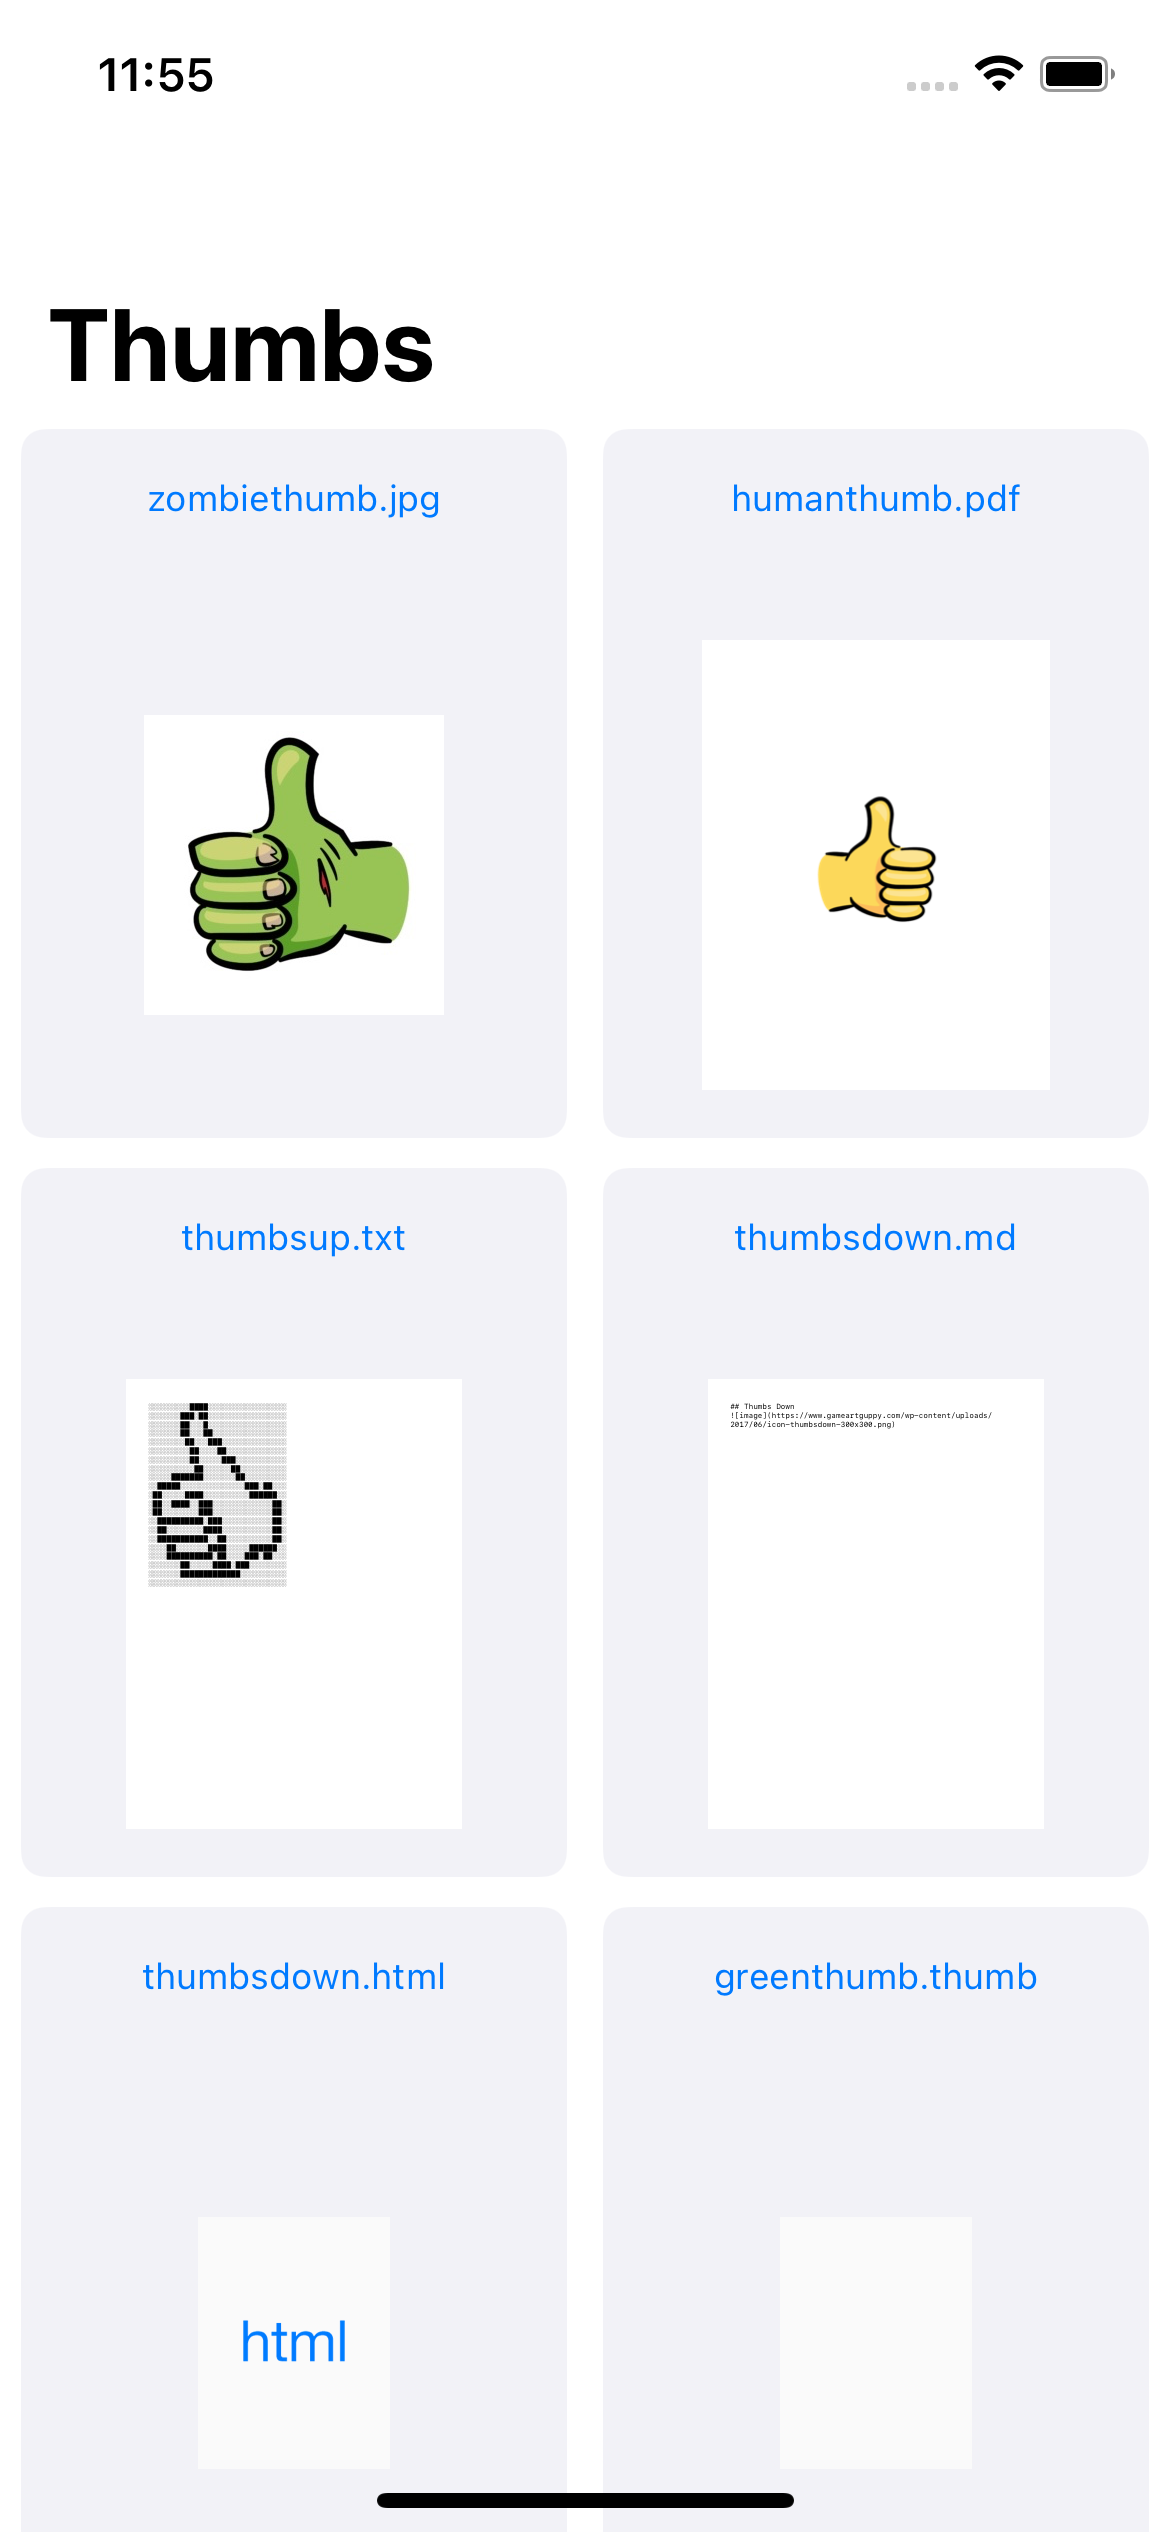 The RazeThumb app home screen containing a list of documents using the default thumbnails from Quick Look